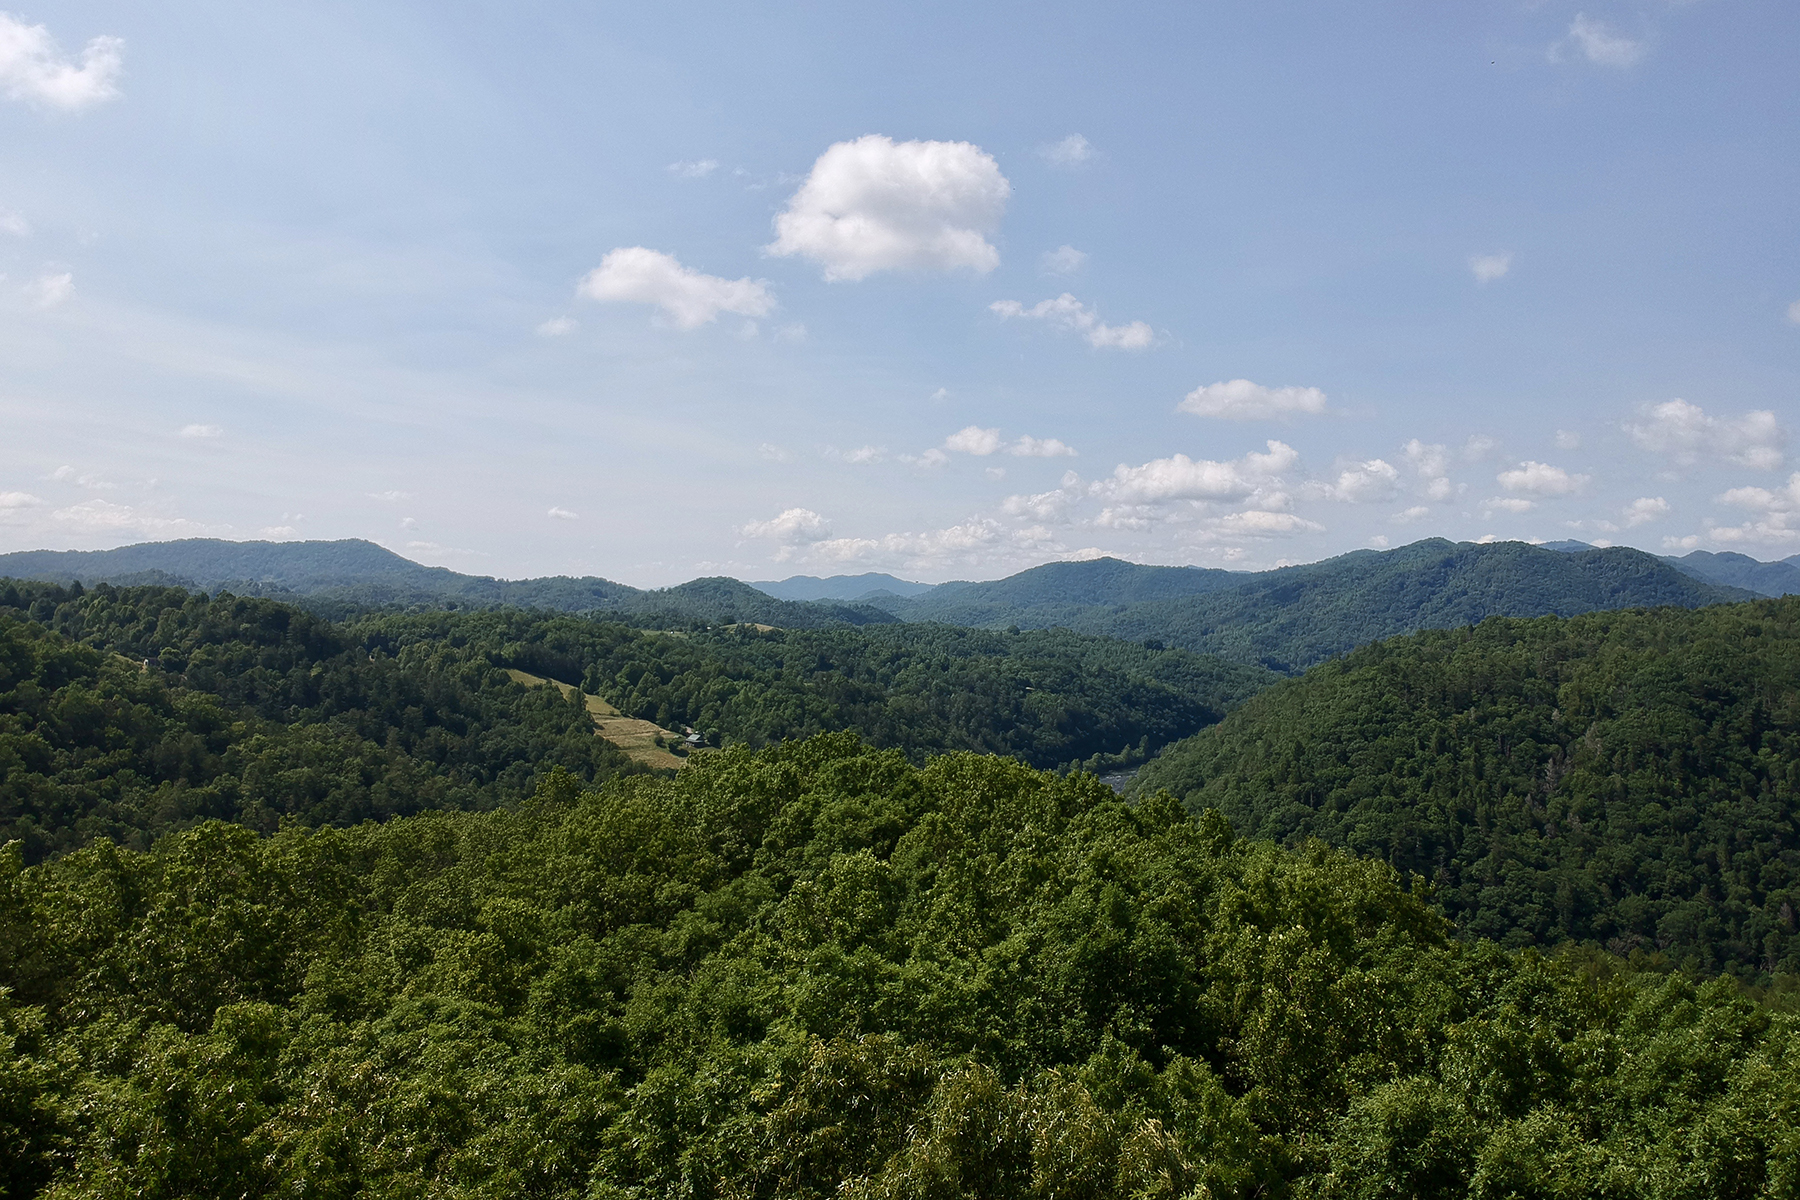 Land for Sale at FRENCH BROAD CROSSING 155 Turkey Trot Trl , 17 Trailside, Marshall, North Carolina 28753 United States